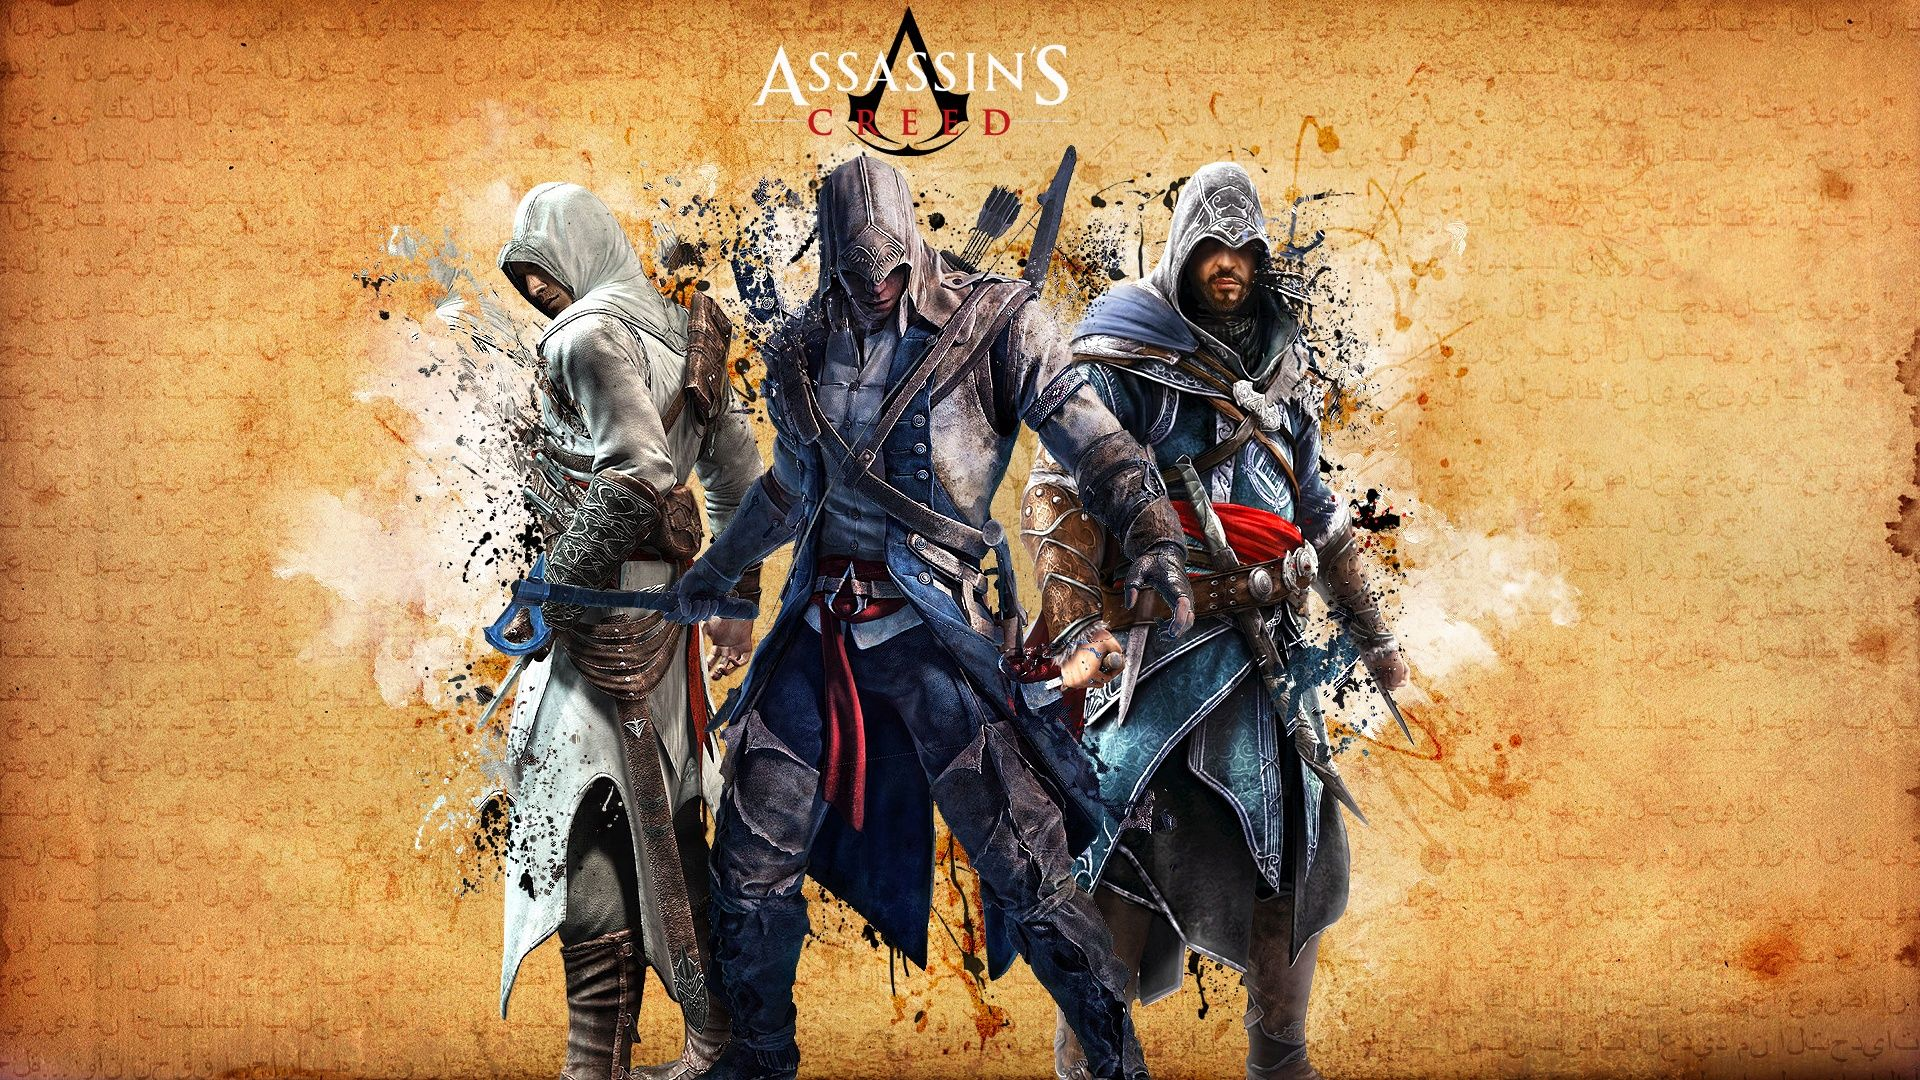 Wallpaper Hd Games Collection For Free Download Assassin S Creed Wallpaper Creed Wallpaper Assassin S Creed Hd